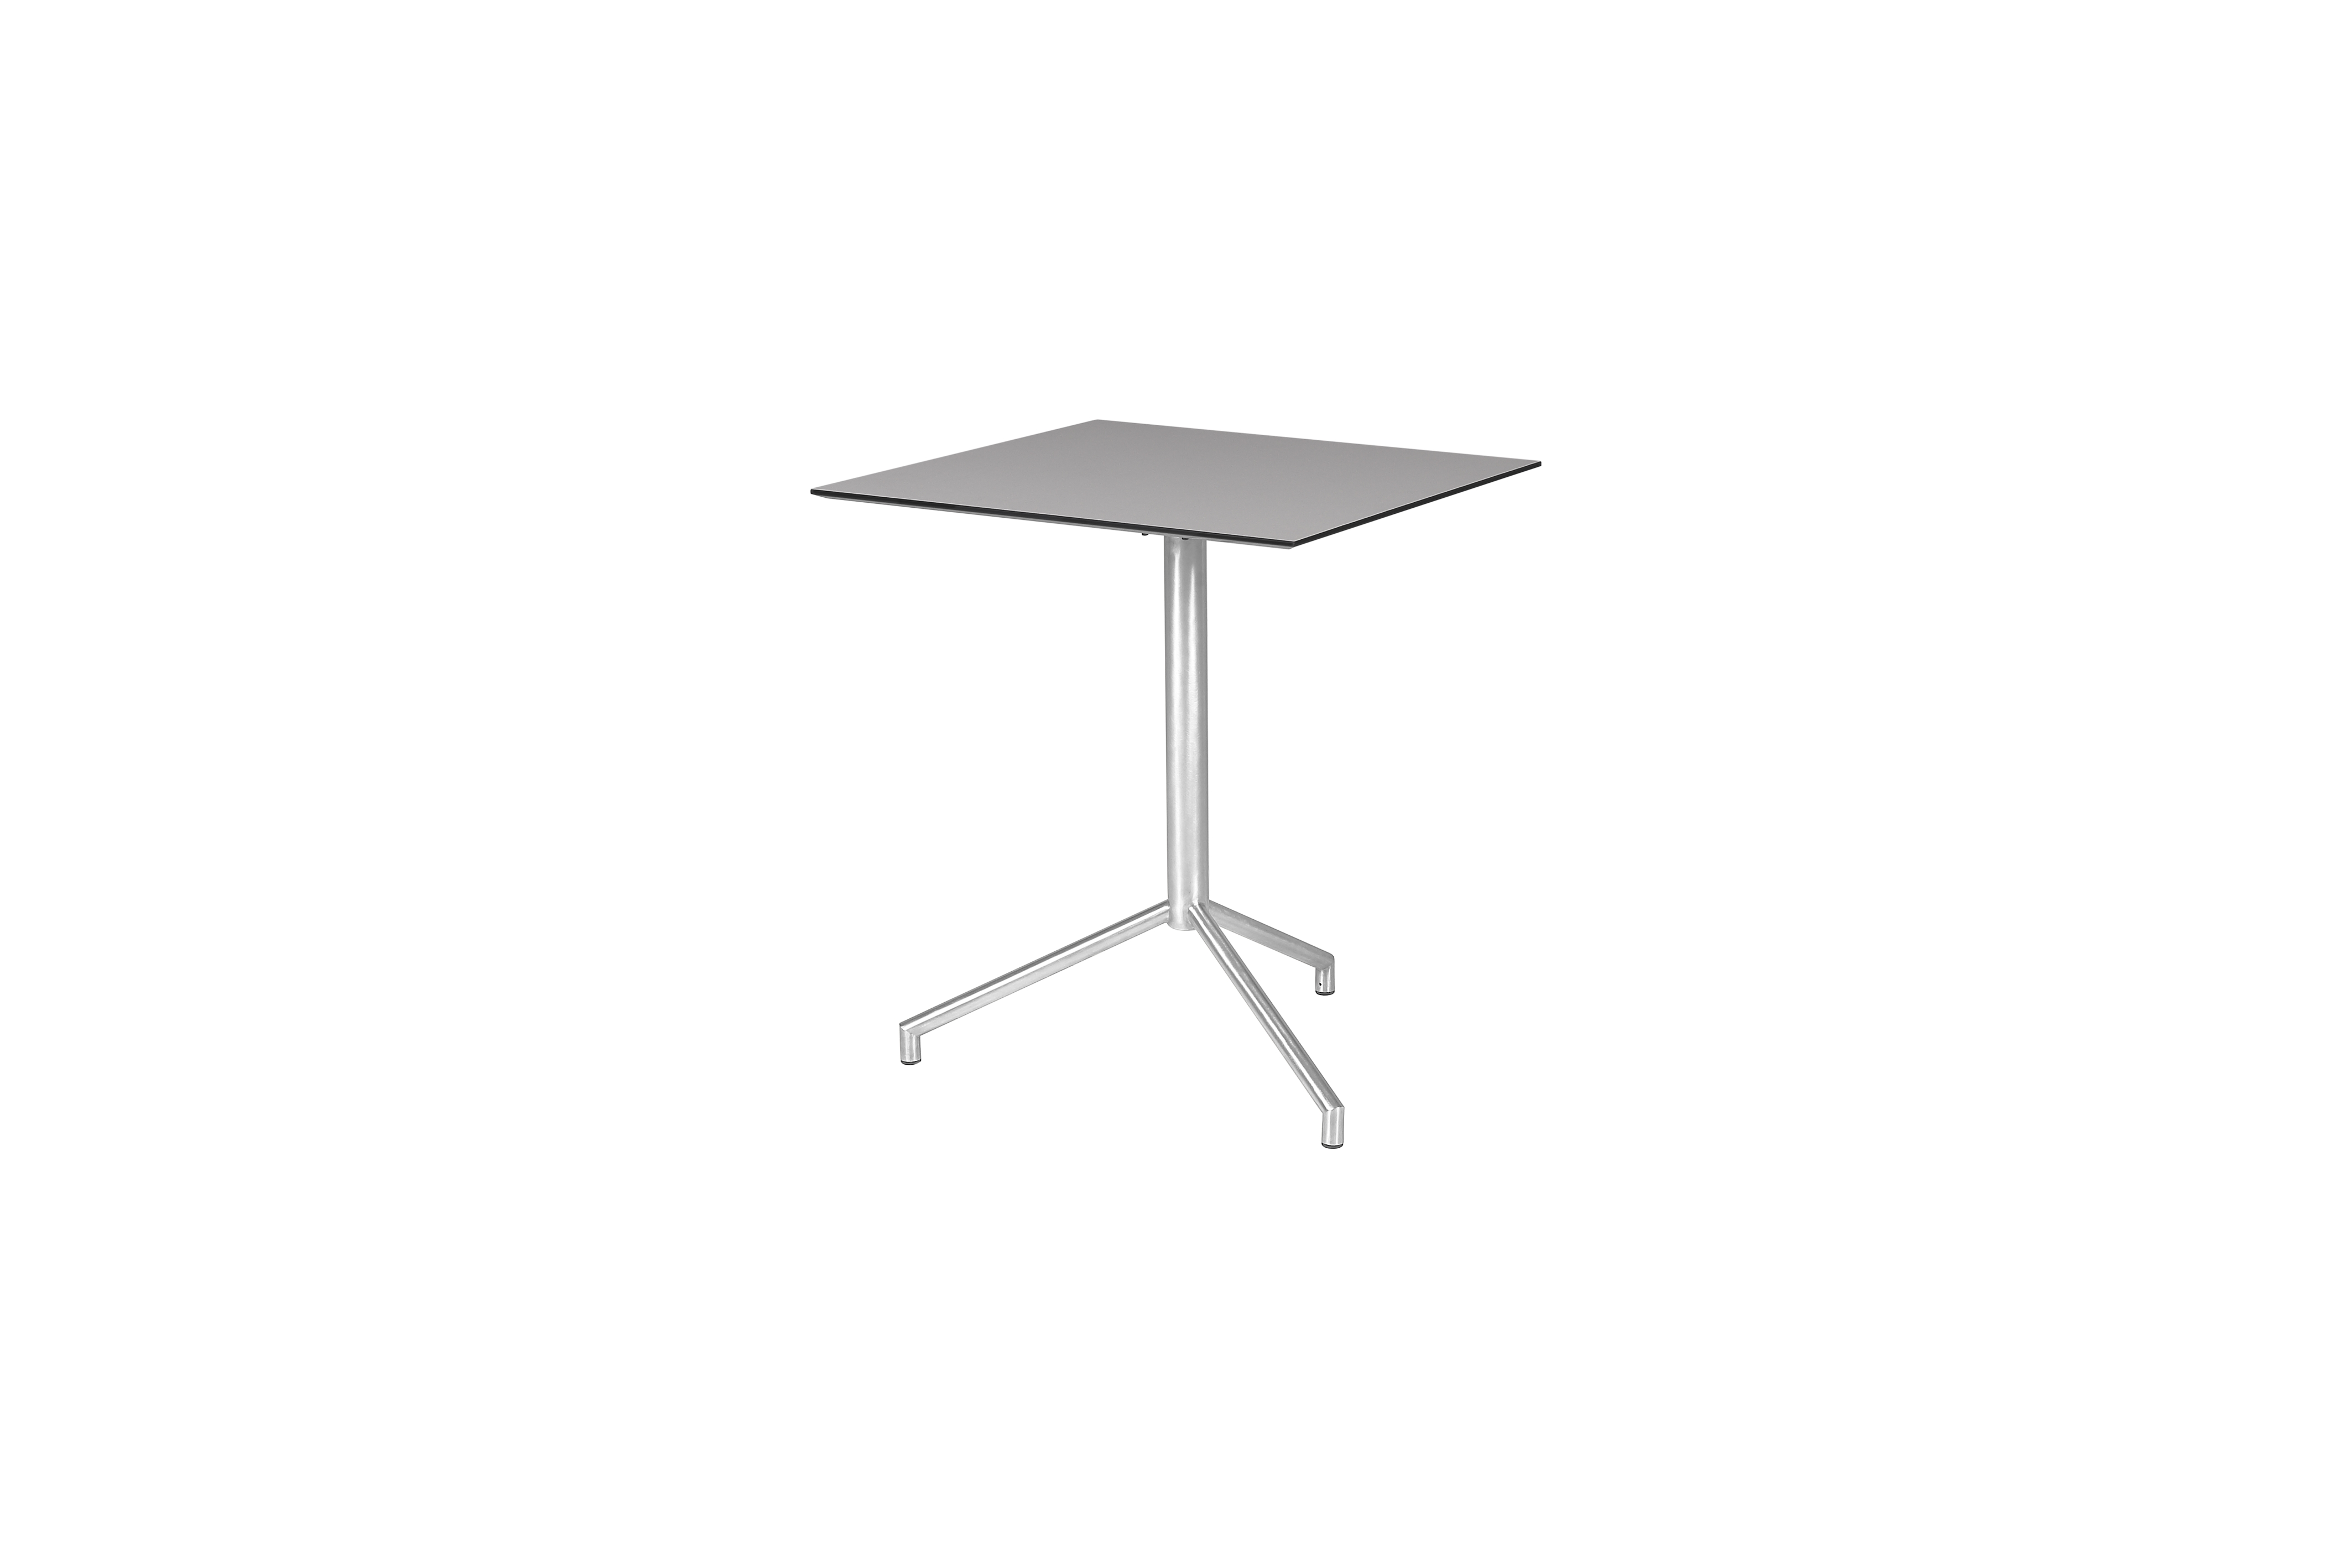 MAMAGREEN_CAF01_CAFE_square_table_flip_top_63x63_cm_hpl